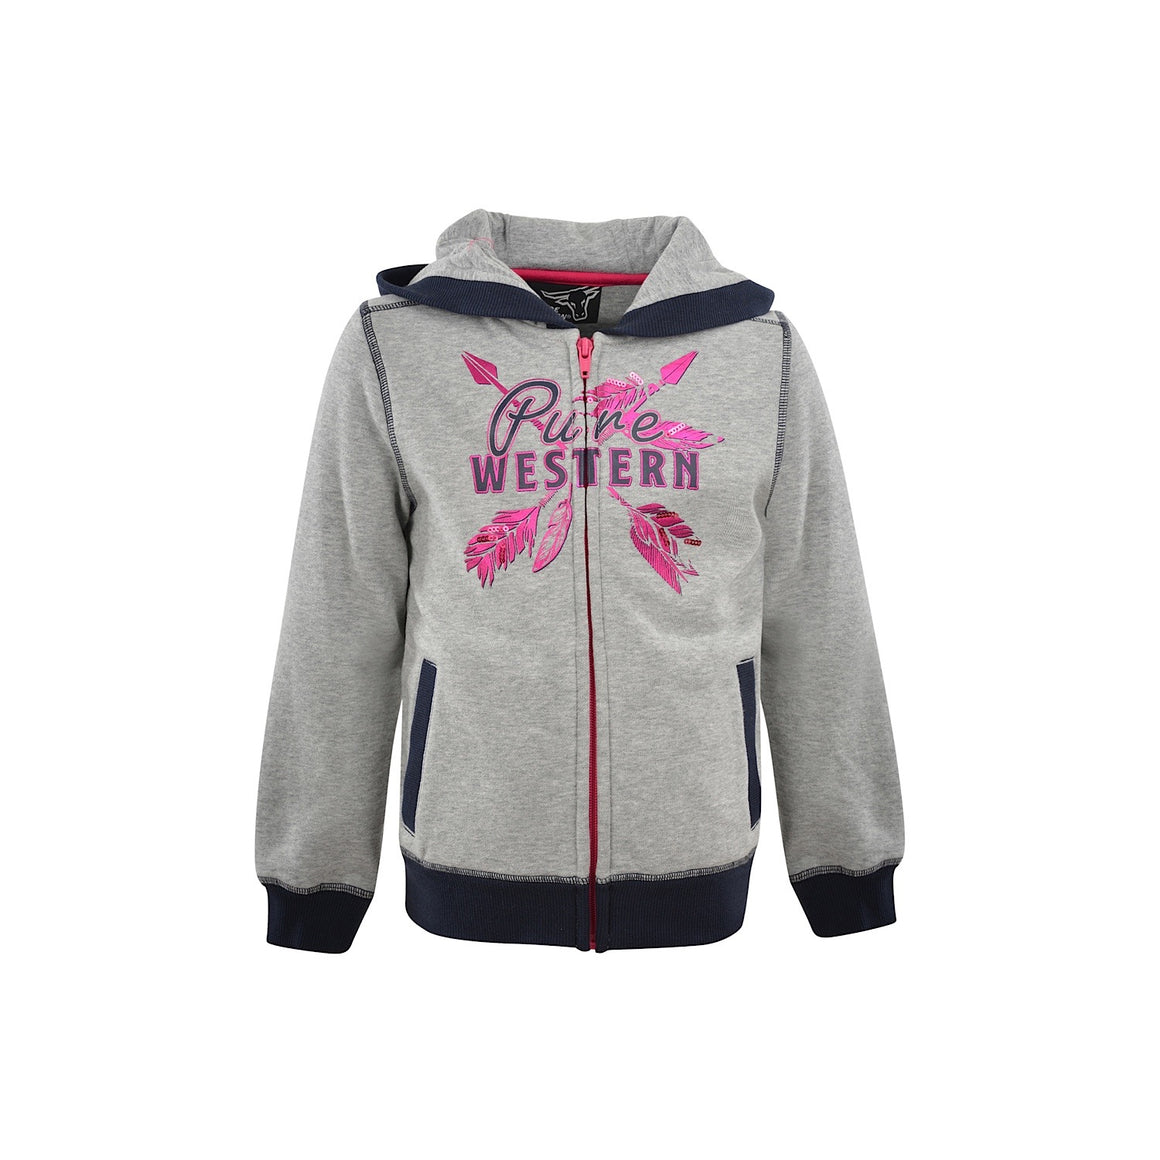 Pure Western Girls Priscilla Zip Through Hoodie Light Grey Marle